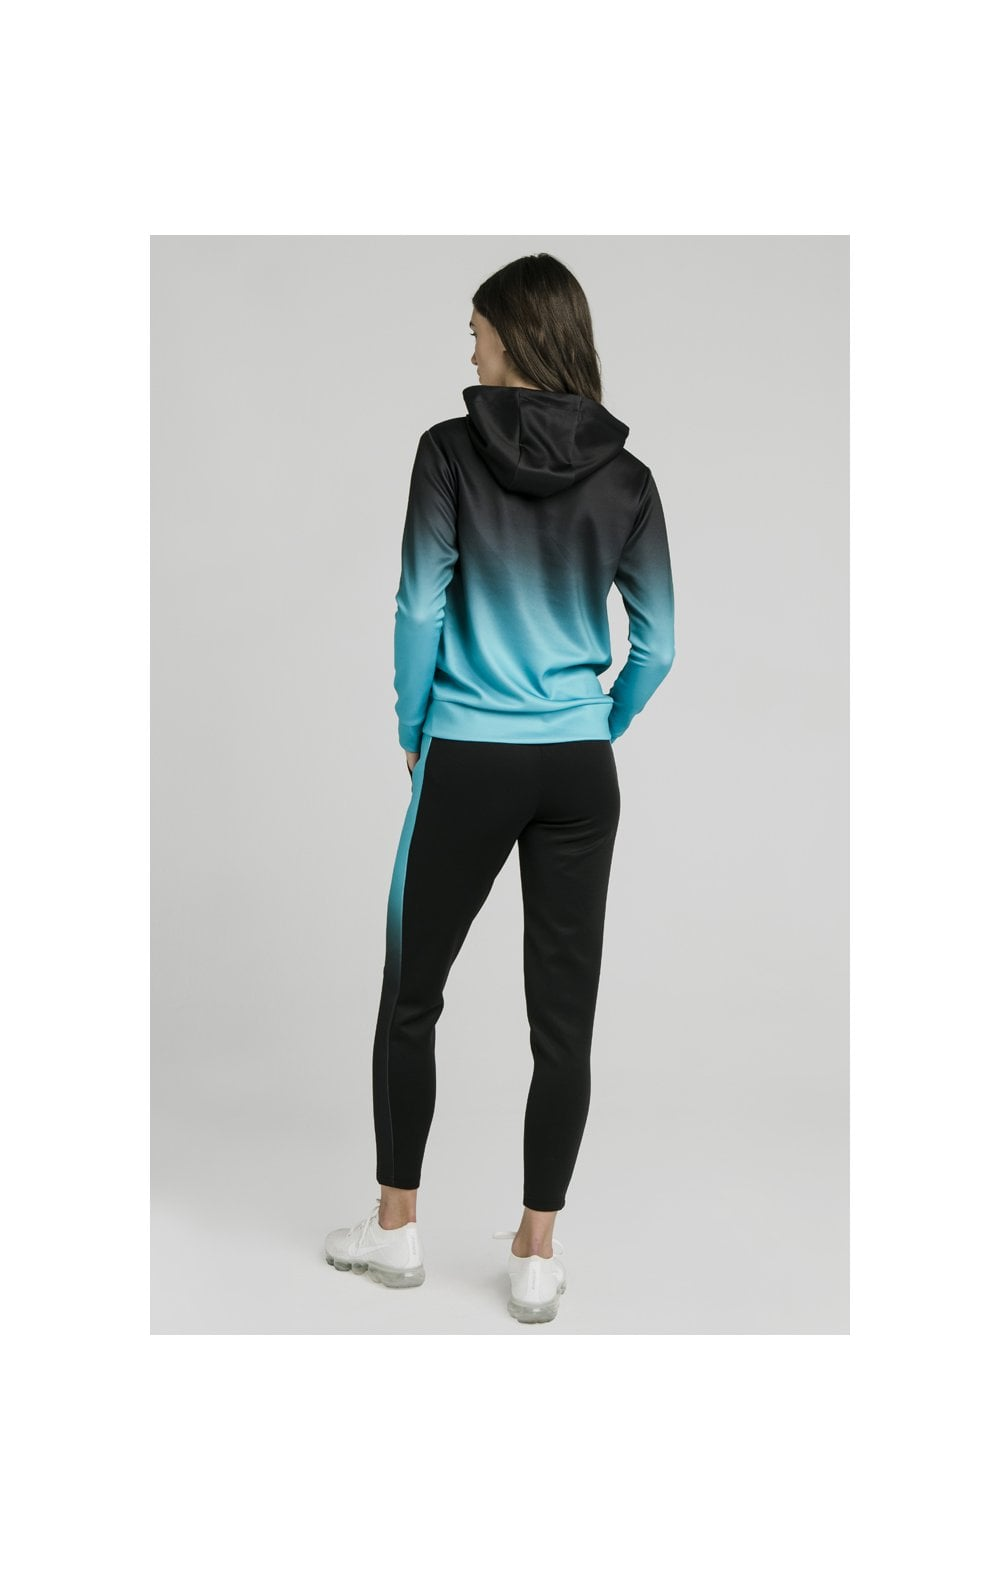 Load image into Gallery viewer, SikSilk Fade Overhead Hoodie - Black & Teal (4)